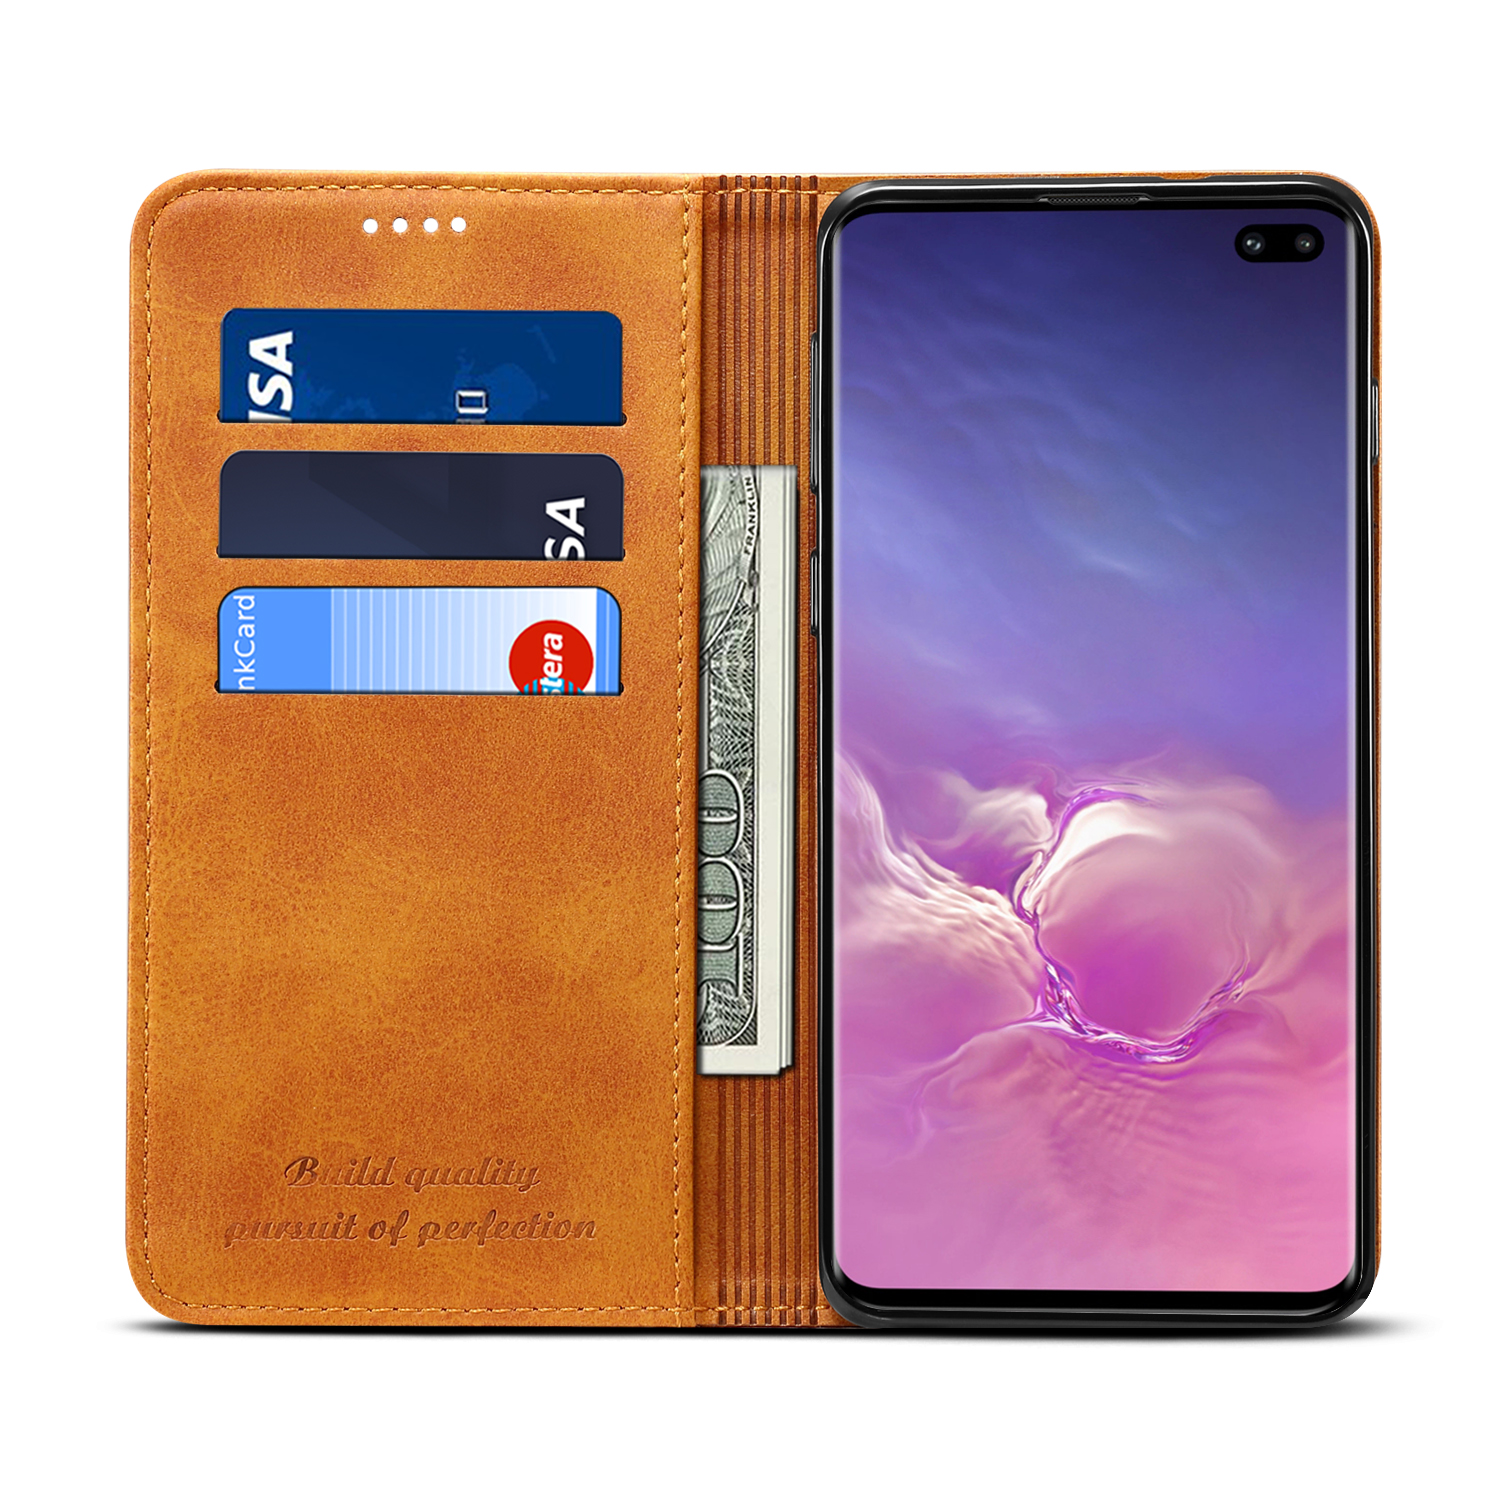 Bakeey Magnetic Flip Protective Case For Samsung Galaxy S10 Plus 6.4 Inch Wallet Card Slot Kicktand Cover